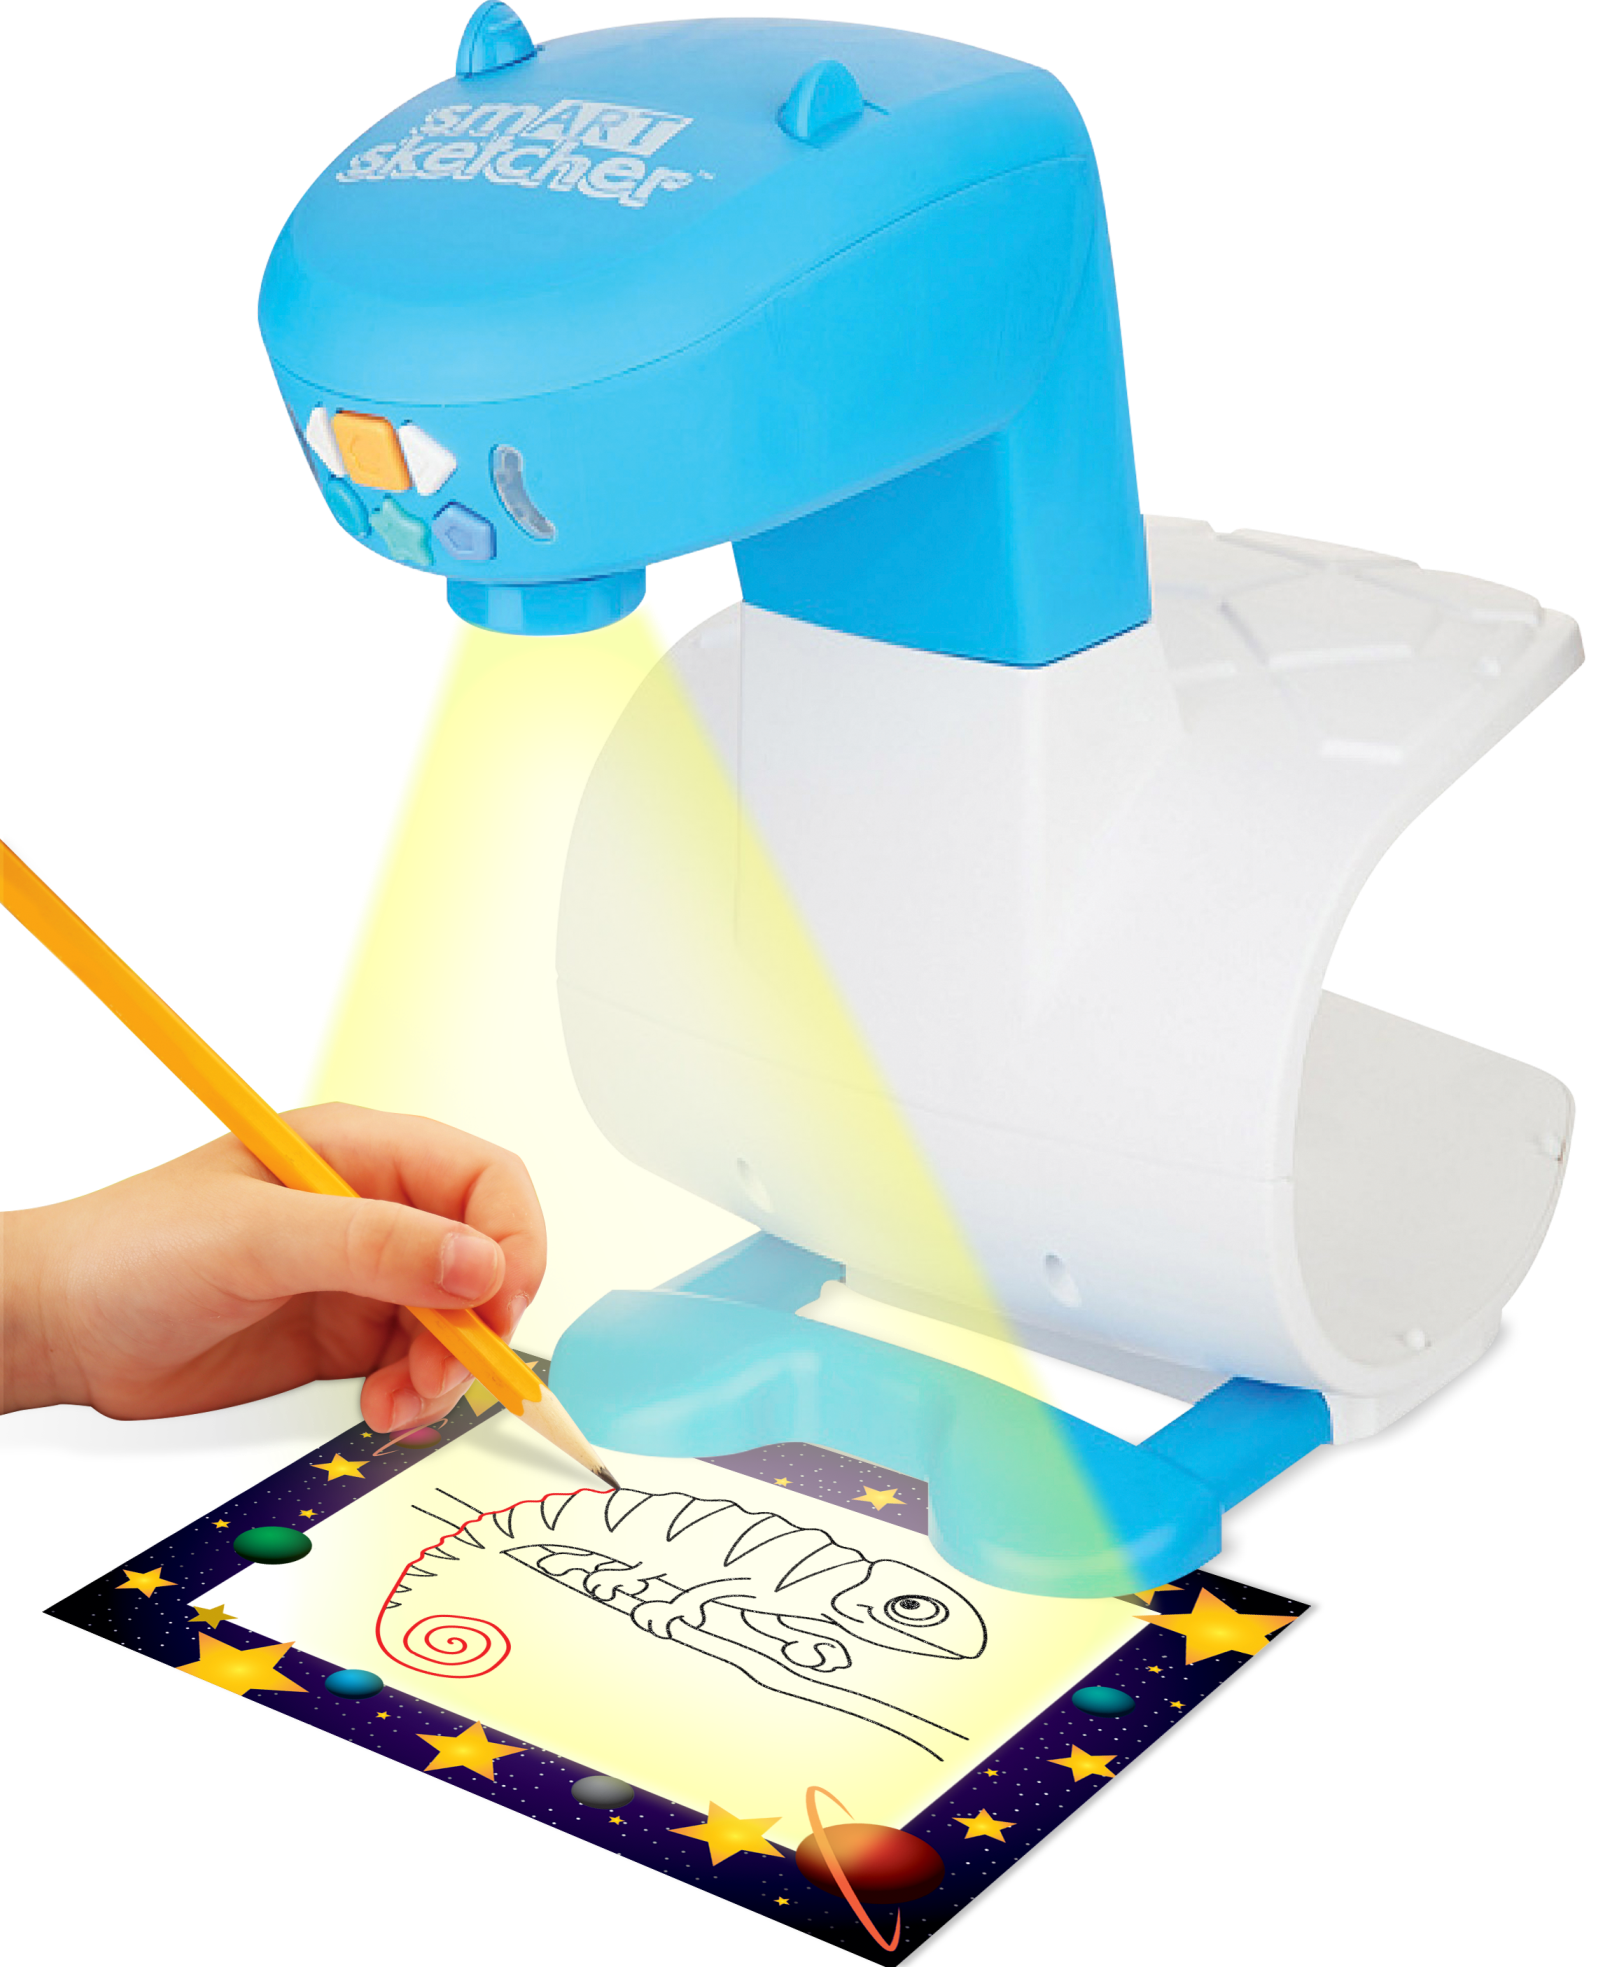 smART Sketcher guides kids in learning to draw and write. Photo: courtesy